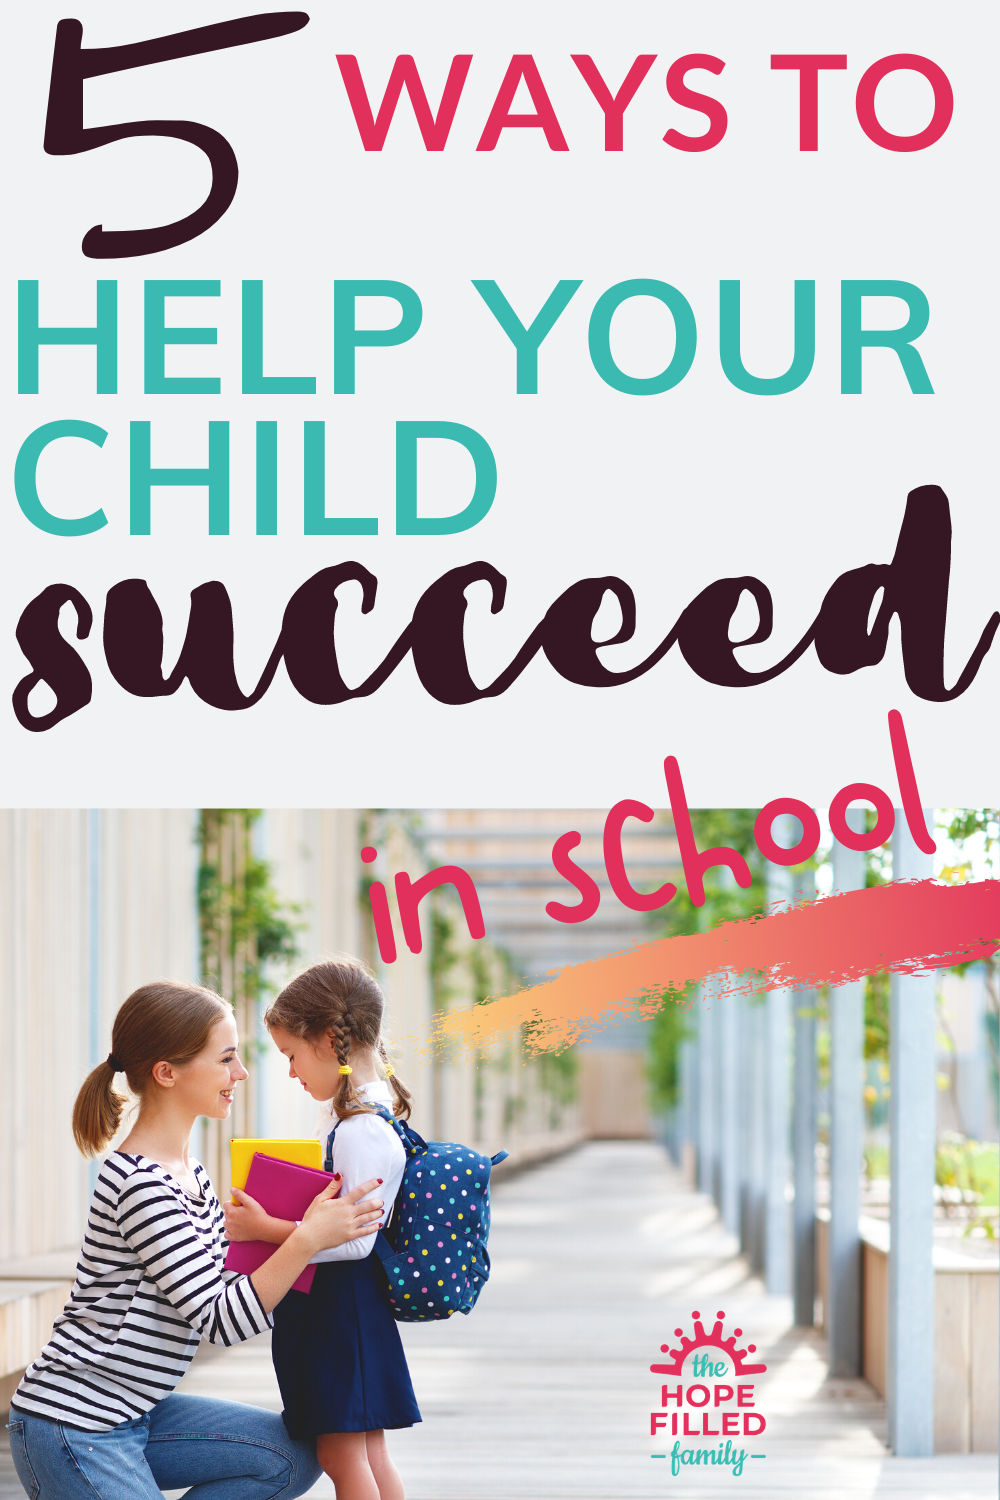 How can I help my child do well at school? What are the secrets of a great relationship with my child's school? 5 tips from a teacher-parent.